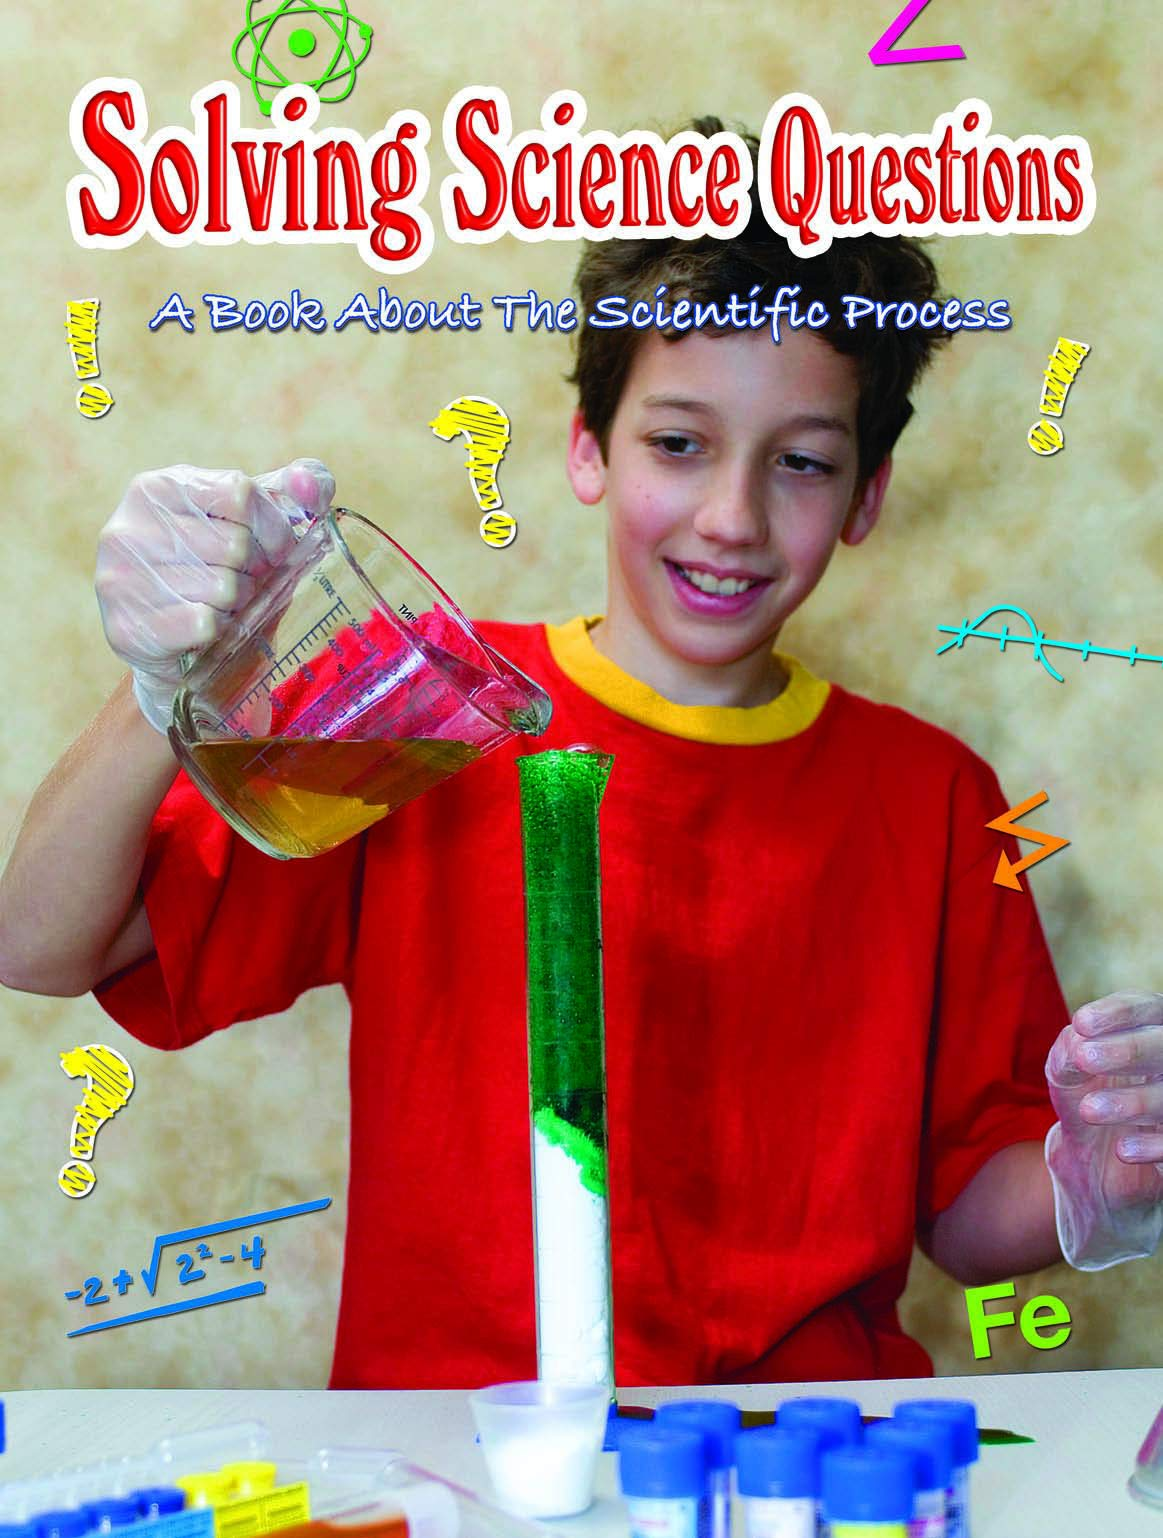 Solving Science Questions: A Book About The Scientific Process (Big Ideas For Young Scientists) ebook